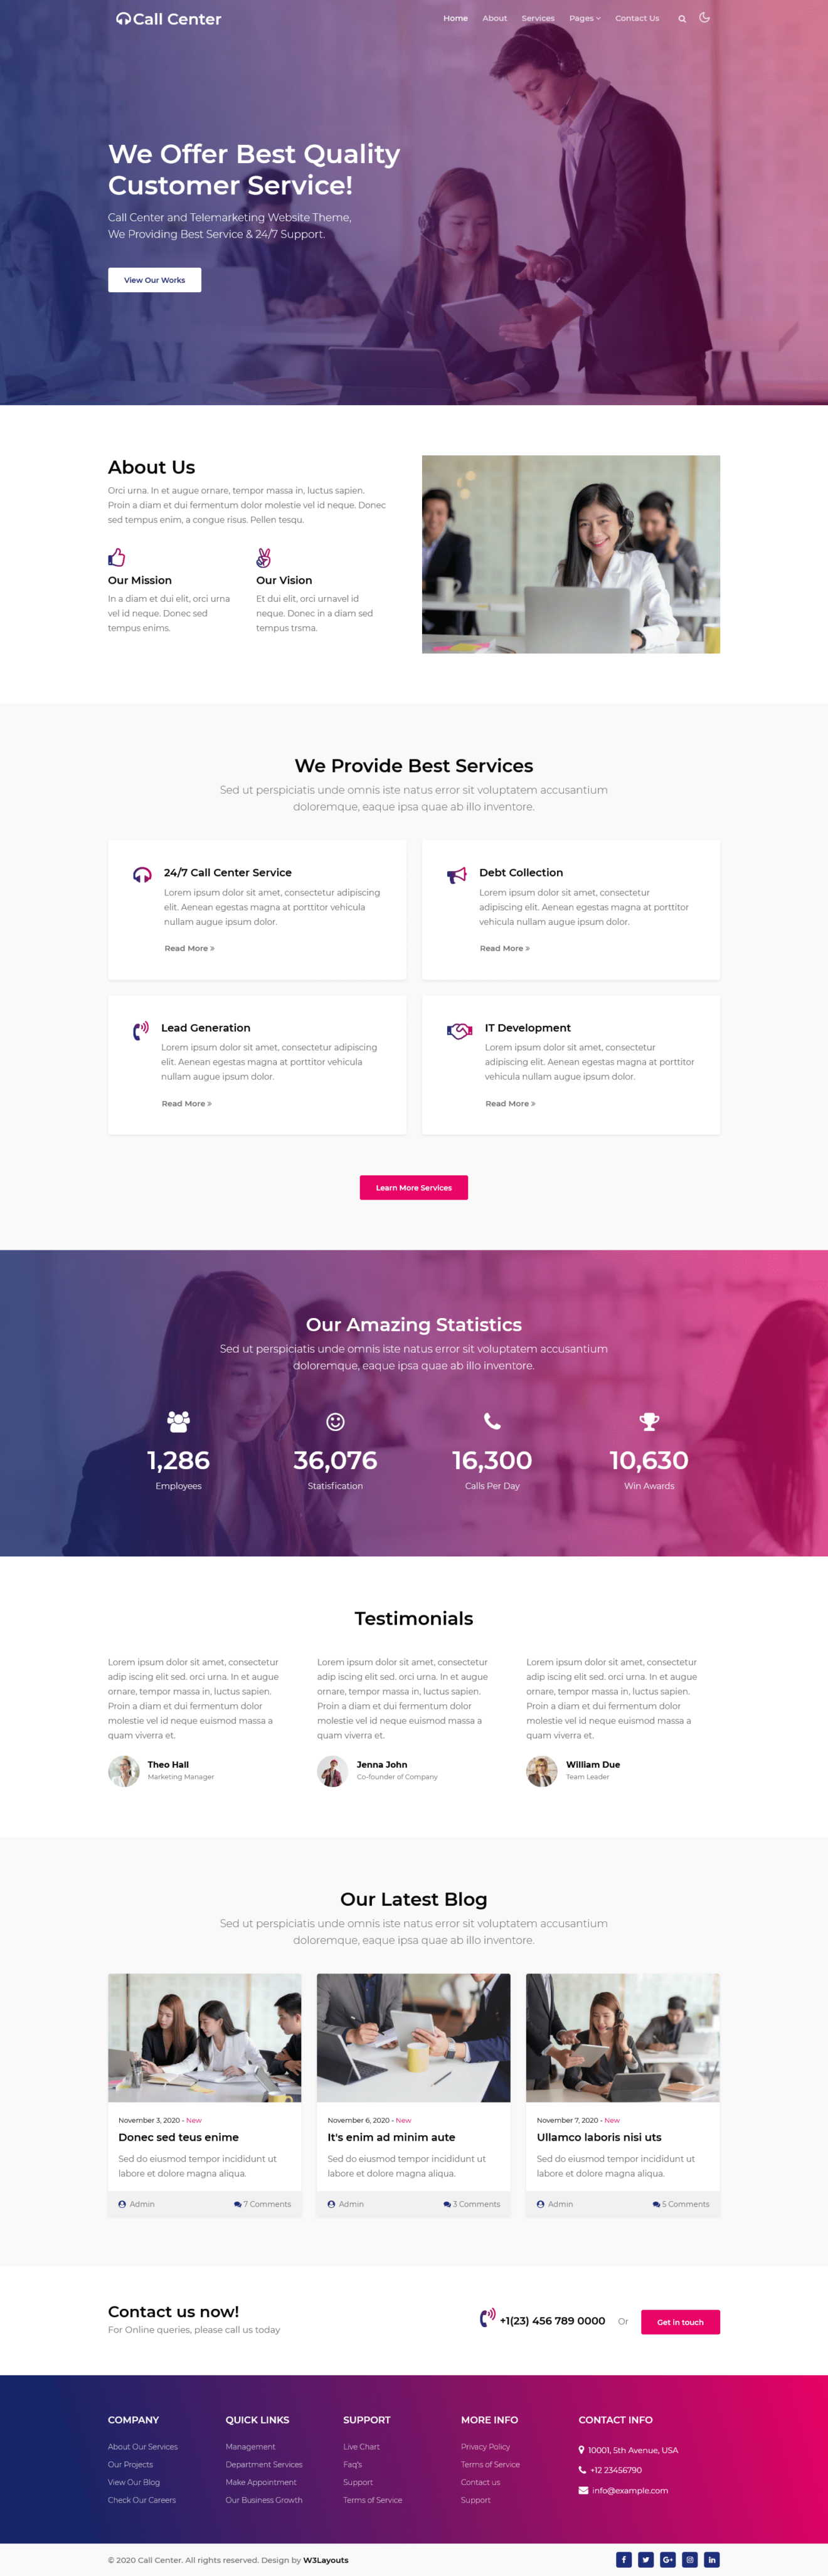 Business Website Templates Free Download - Home page